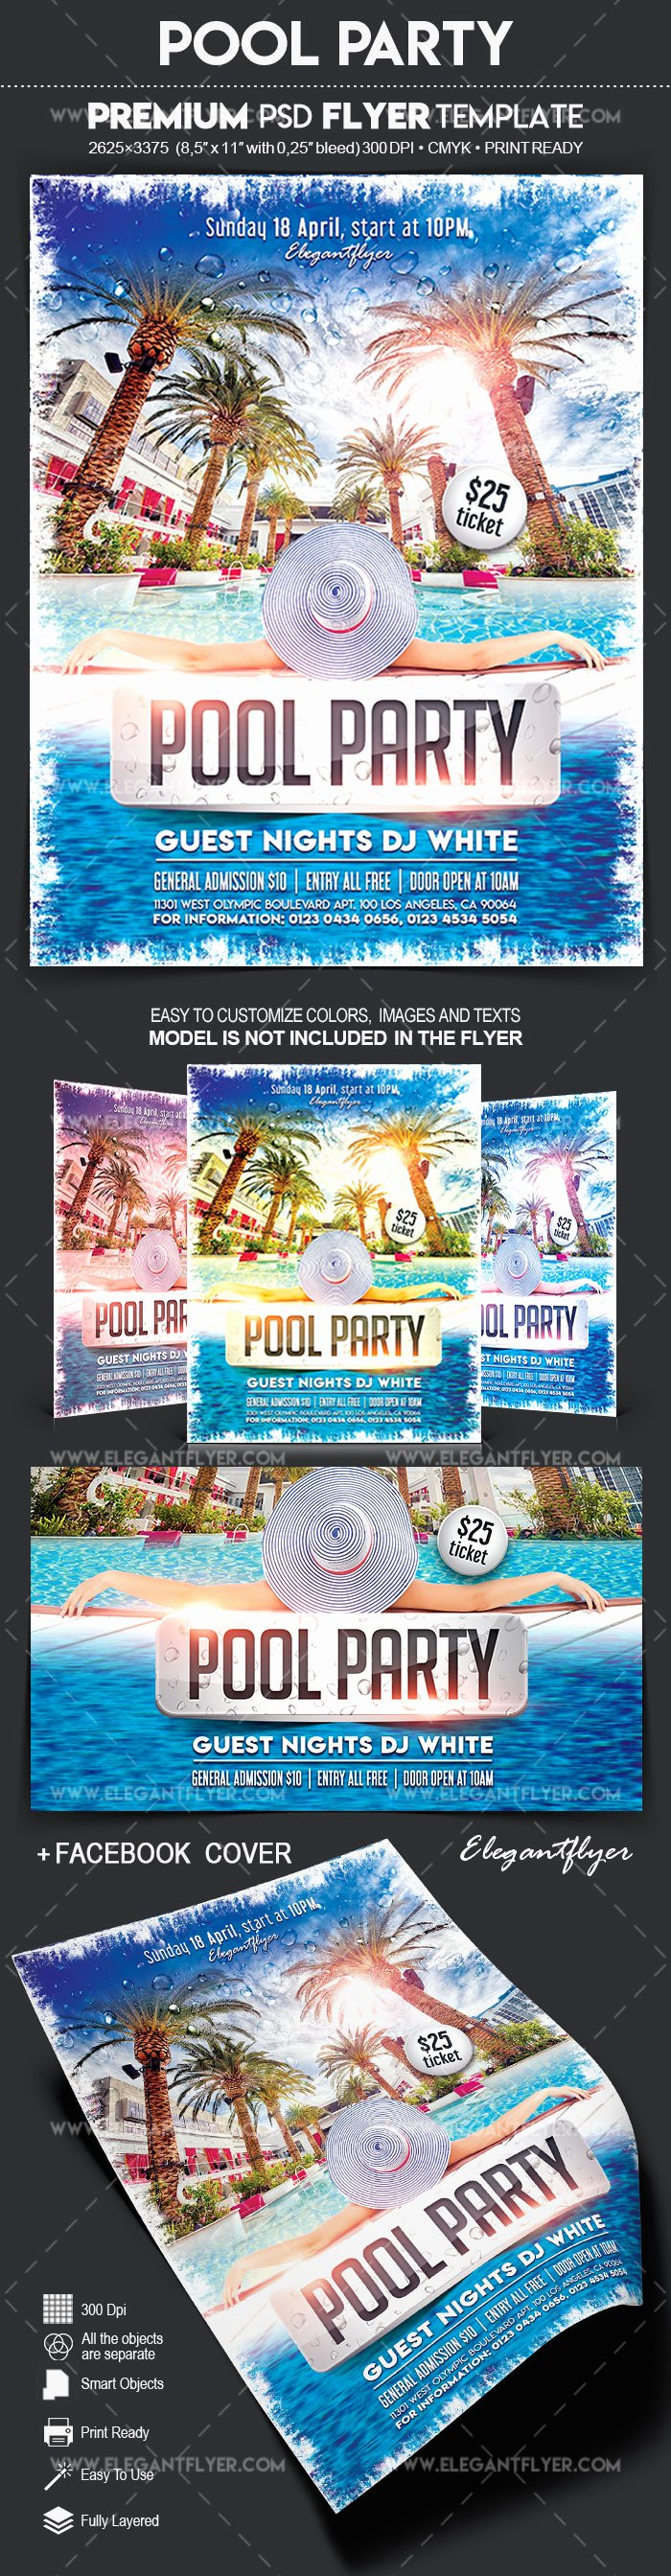 Pool Party Flyer Templates Luxury Pool Party – Flyer Psd Template – by Elegantflyer